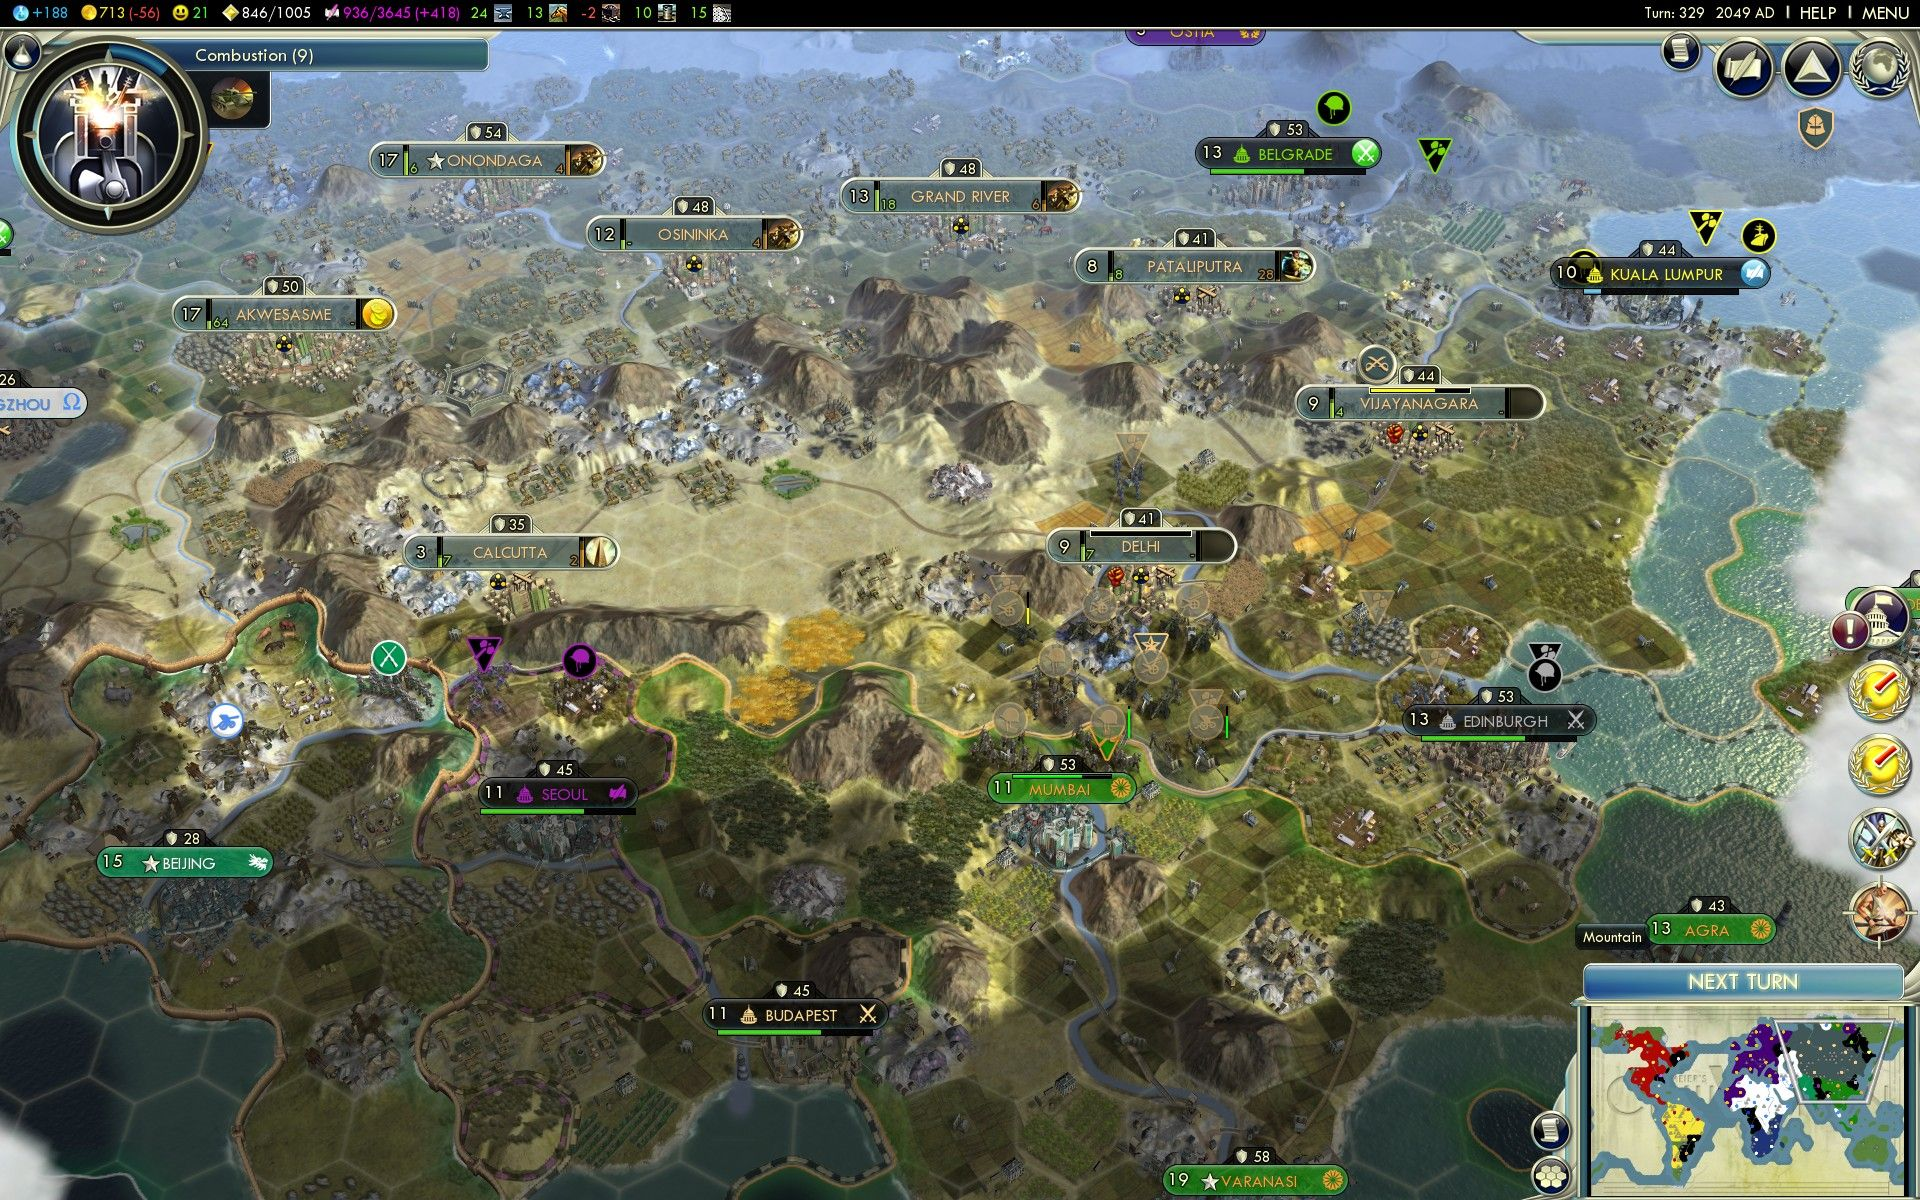 I Just Got Civilization V Today For Pc I Never Had Played One Before Some Advice Maybe Turn Based Strategy Strategy Games Real Time Strategy Game